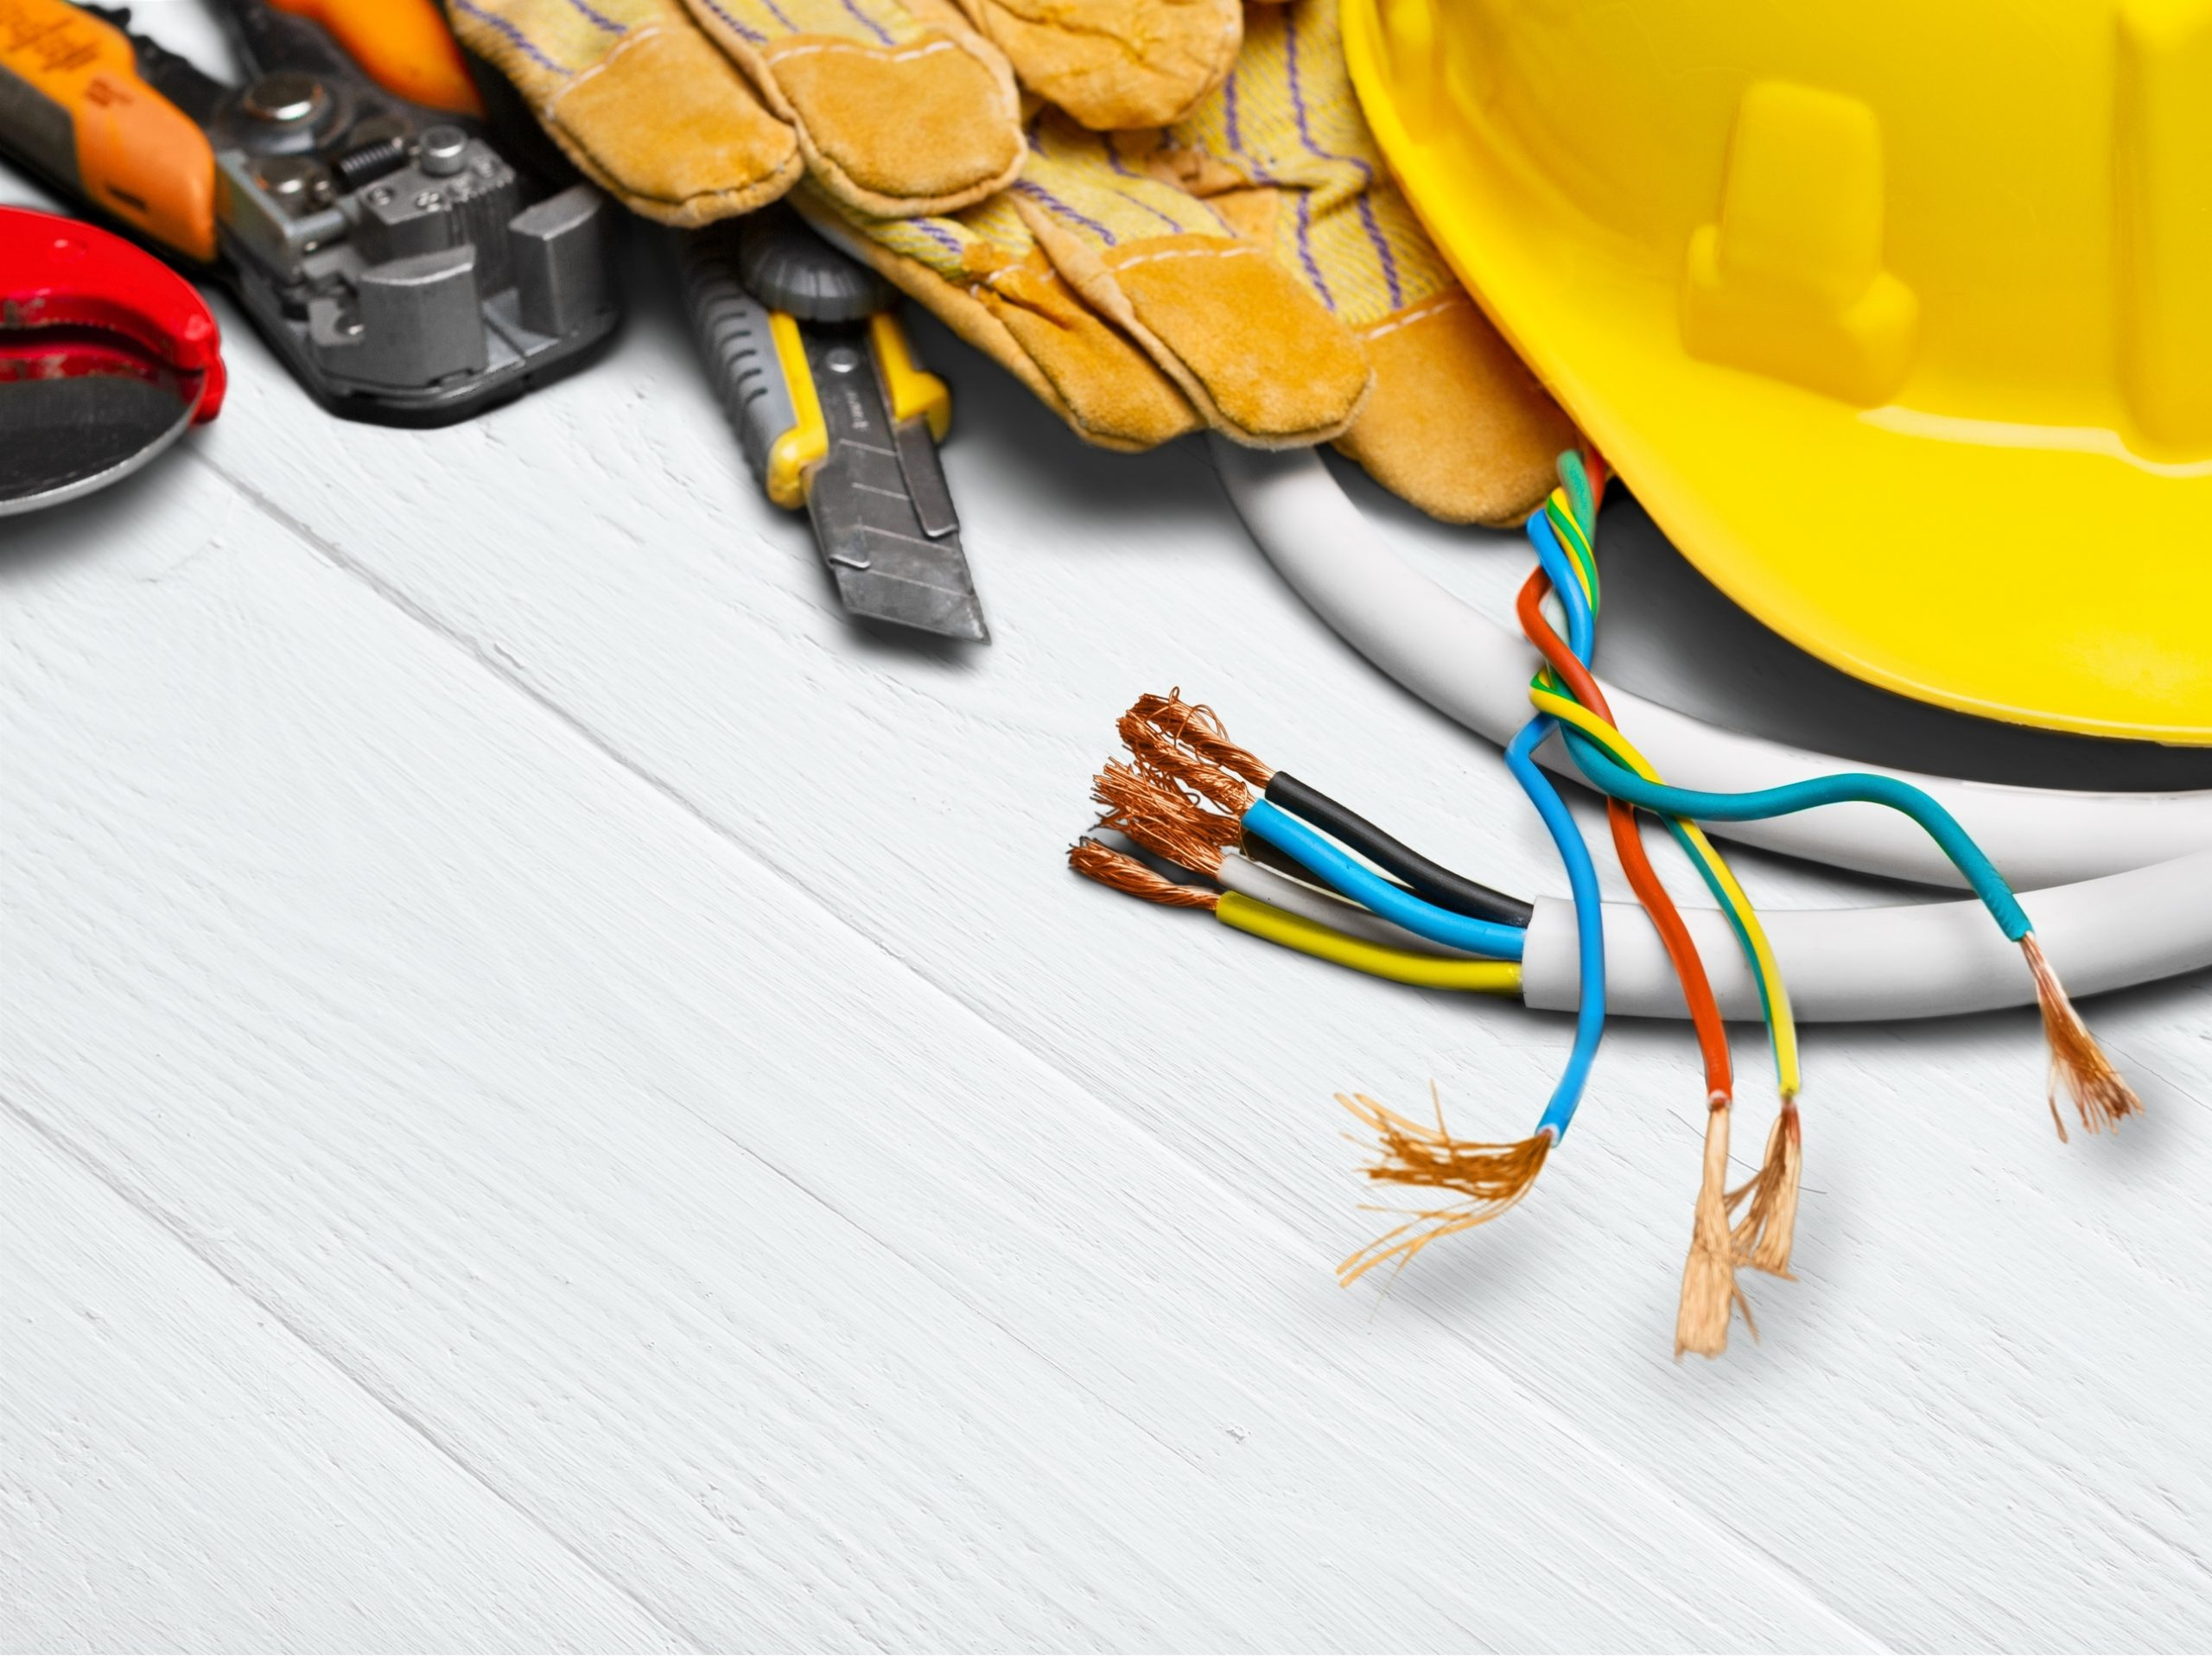 Equipment used by an electrician